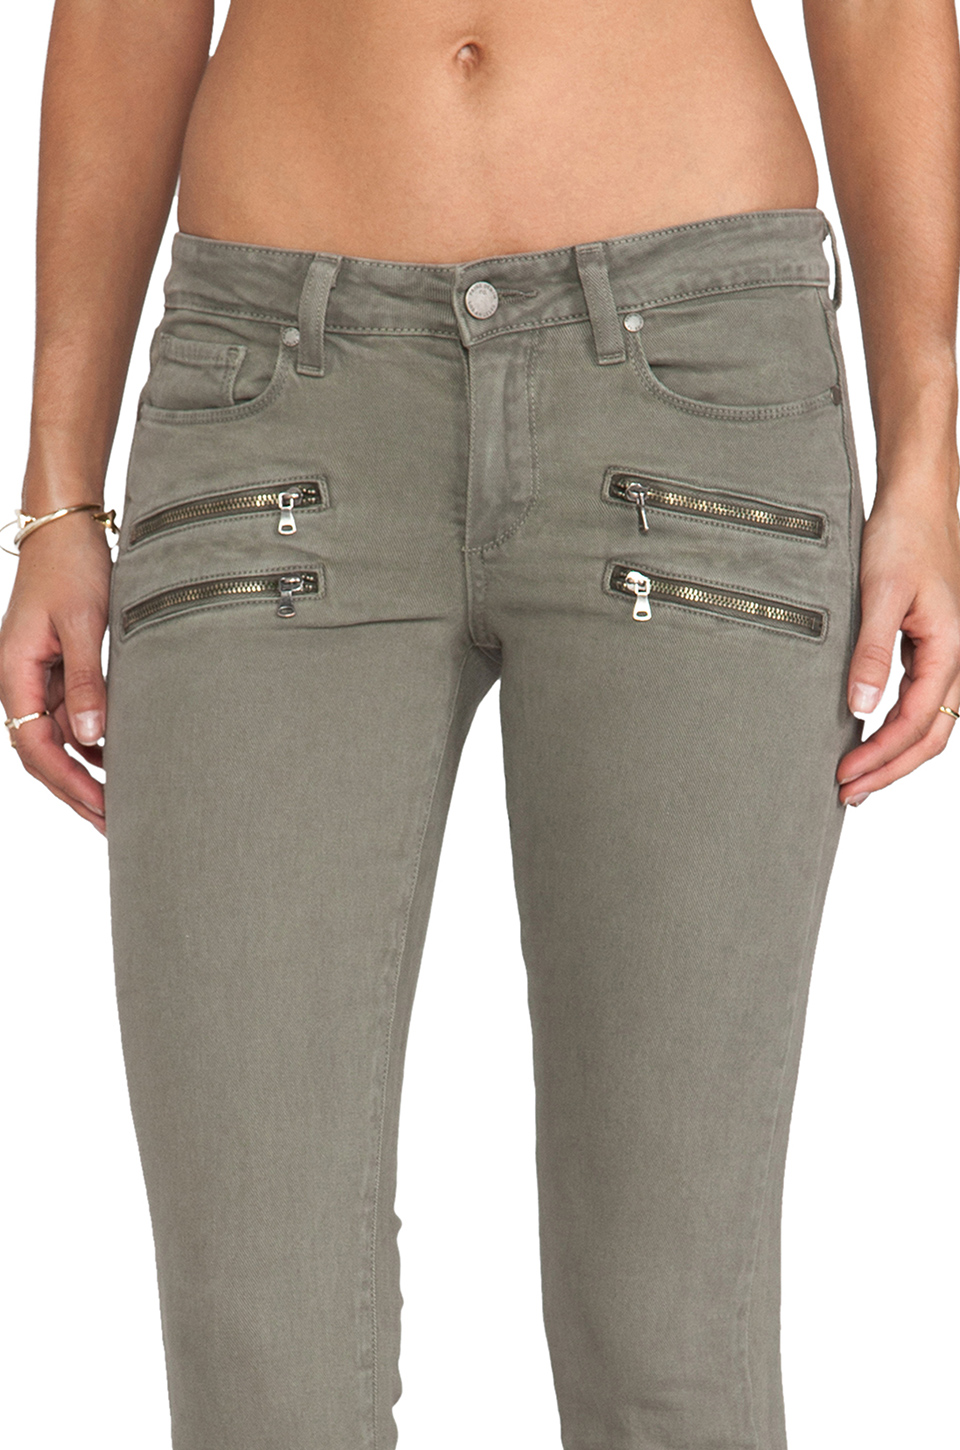 Paige Denim Edgemont Ultra Skinny with Zippers in Fatigue Green | REVOLVE